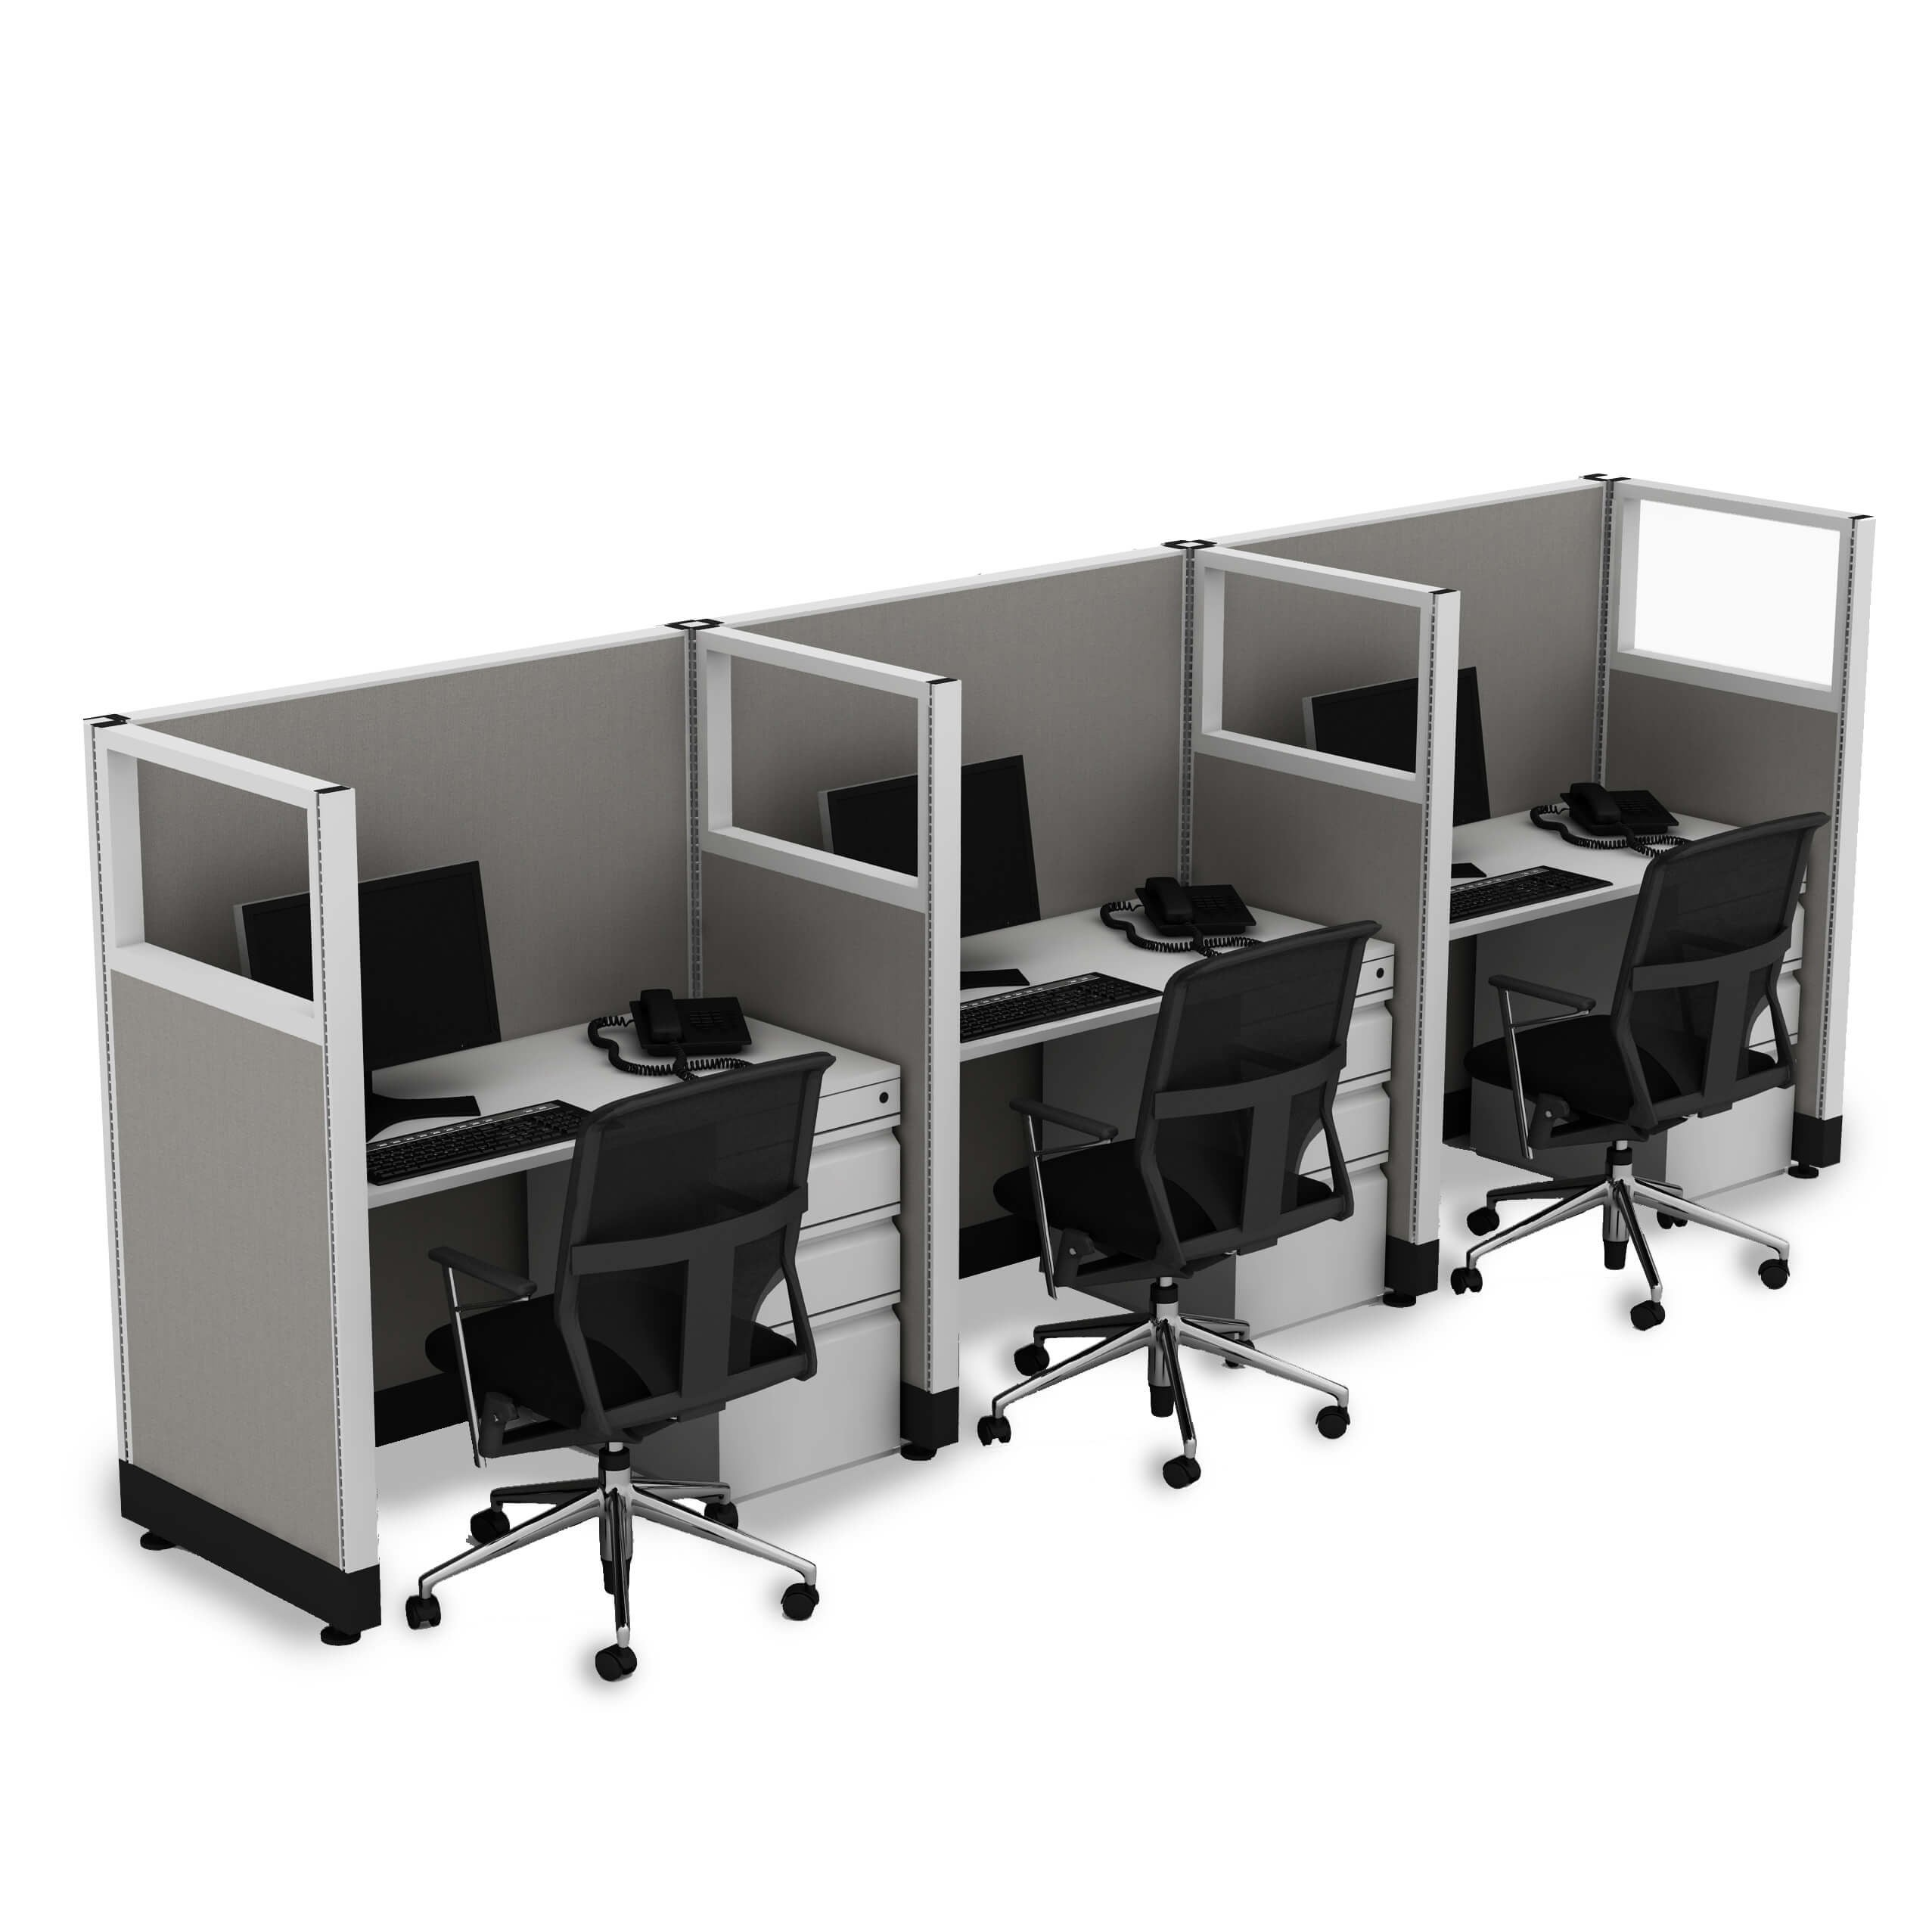 Cubicle Workstations 53H 3pack Inline Powered (2x4 - White Desk White Paint - Assembled)